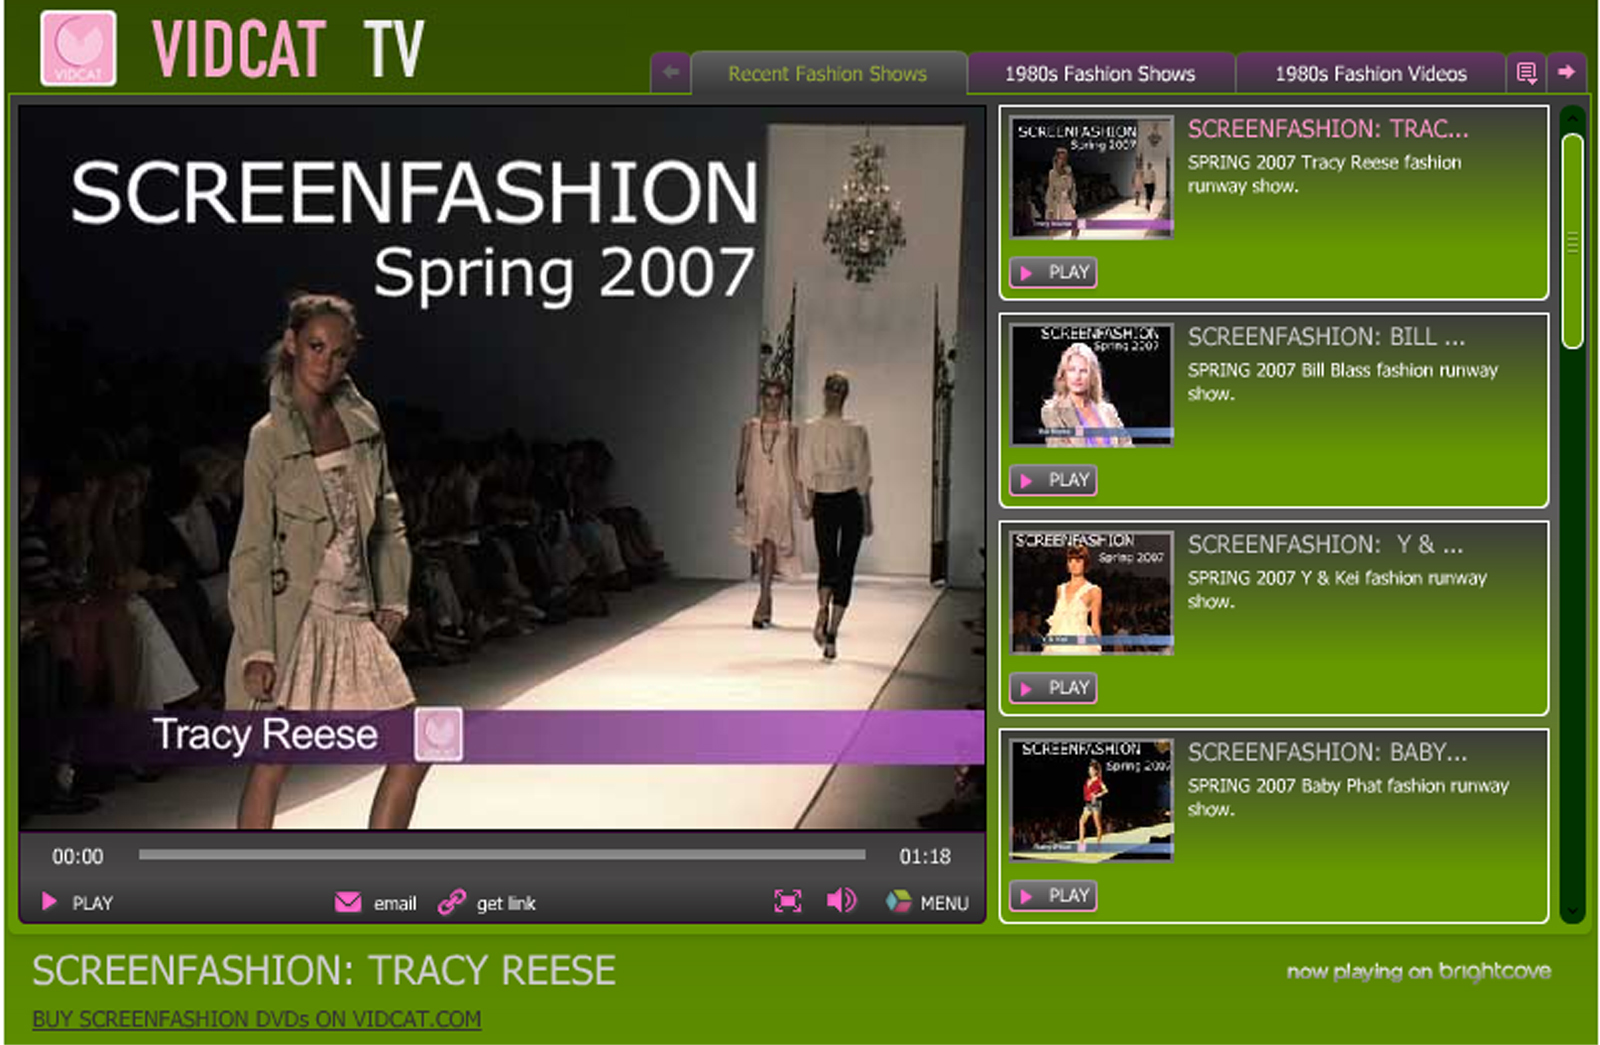 Vidcat TV Launched: New Internet Fashion TV Channel Features Several